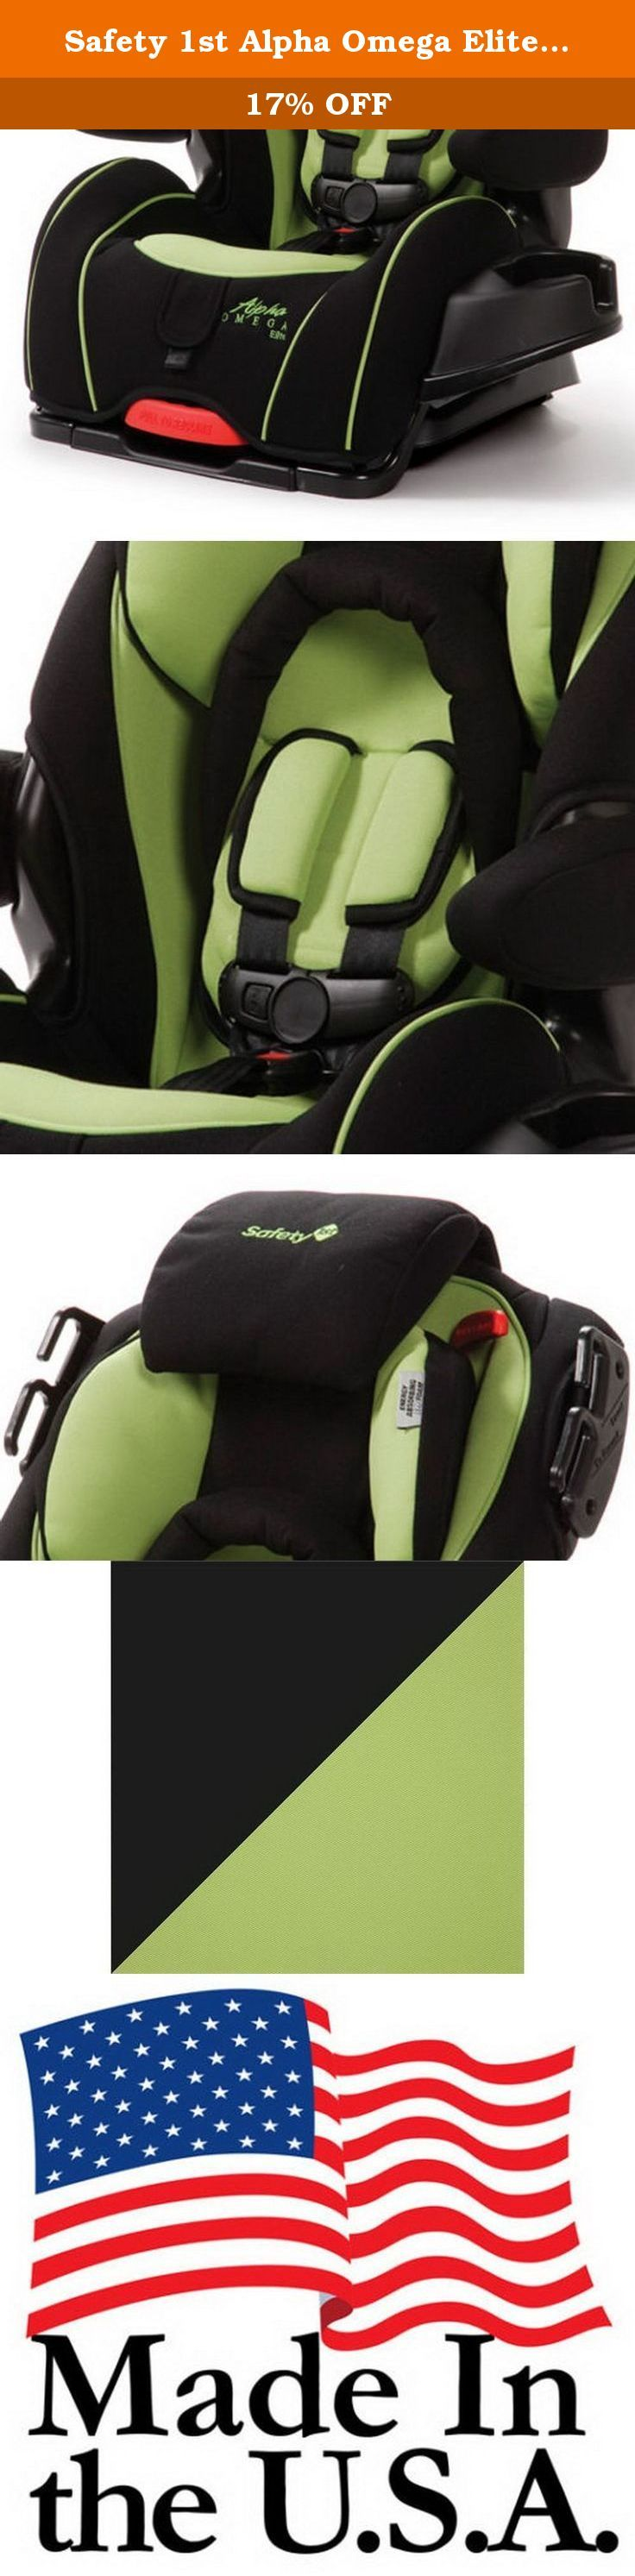 Safety 1st Alpha Omega Elite Convertible 3-in-1 Baby Car Seat, Triton| CC061TRI. - The Safety 1st Convertible Car Seat is a versatile, extended-use car seat with superior comfort and convenience features which will please parents and children alike. - It starts as a rear-facing infant car seat, converts to a forward-facing car seat and later transitions into a belt-positioning booster. - Its seat pad is easily removable for quick cleaning. - The Safety 1st Convertible Car Seat provides...